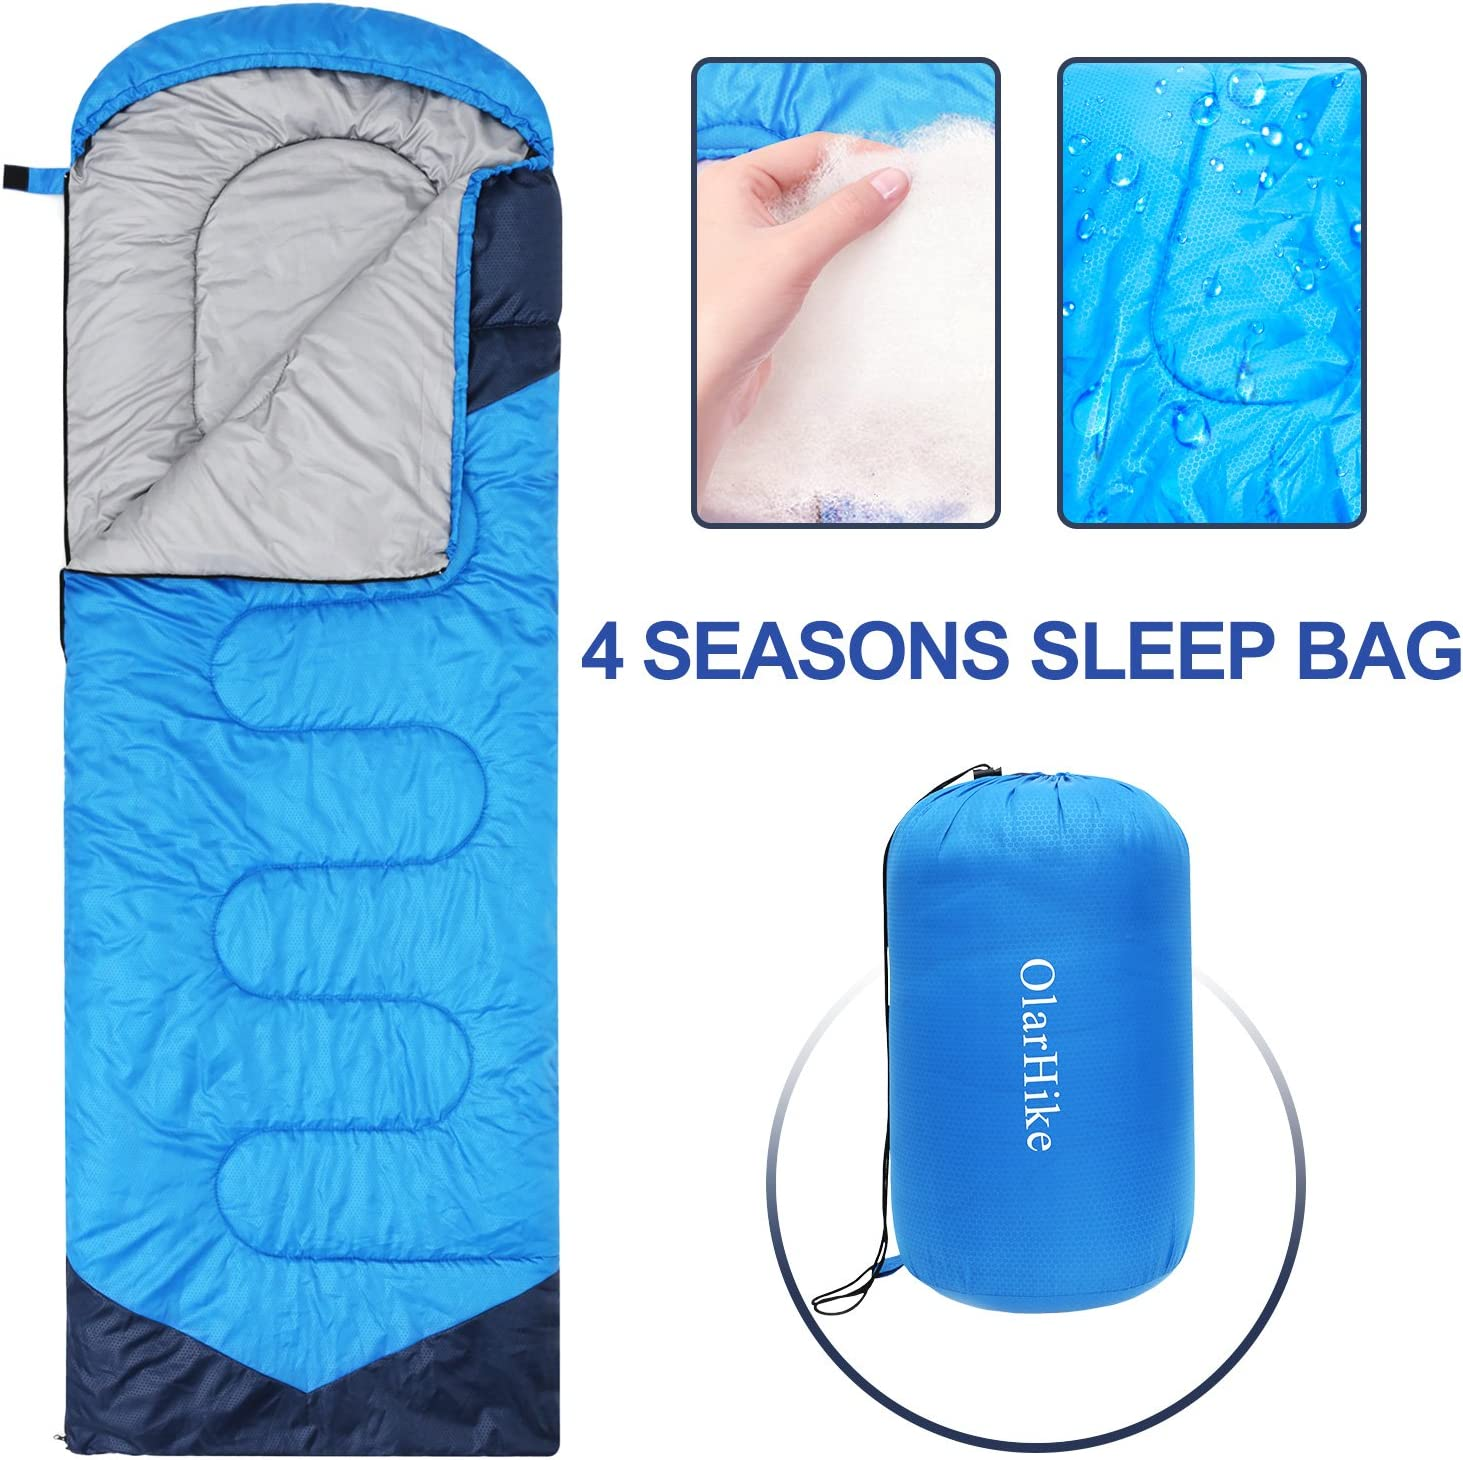 2.4 lbs ATEPA Backpacking Lightweight Compact Sleeping Bag Hiking Warm Weather Summer Sleeping Bag with Compression Sack for Camping Boys Men Waterproof Outdoor Youth Girls Women for Adults